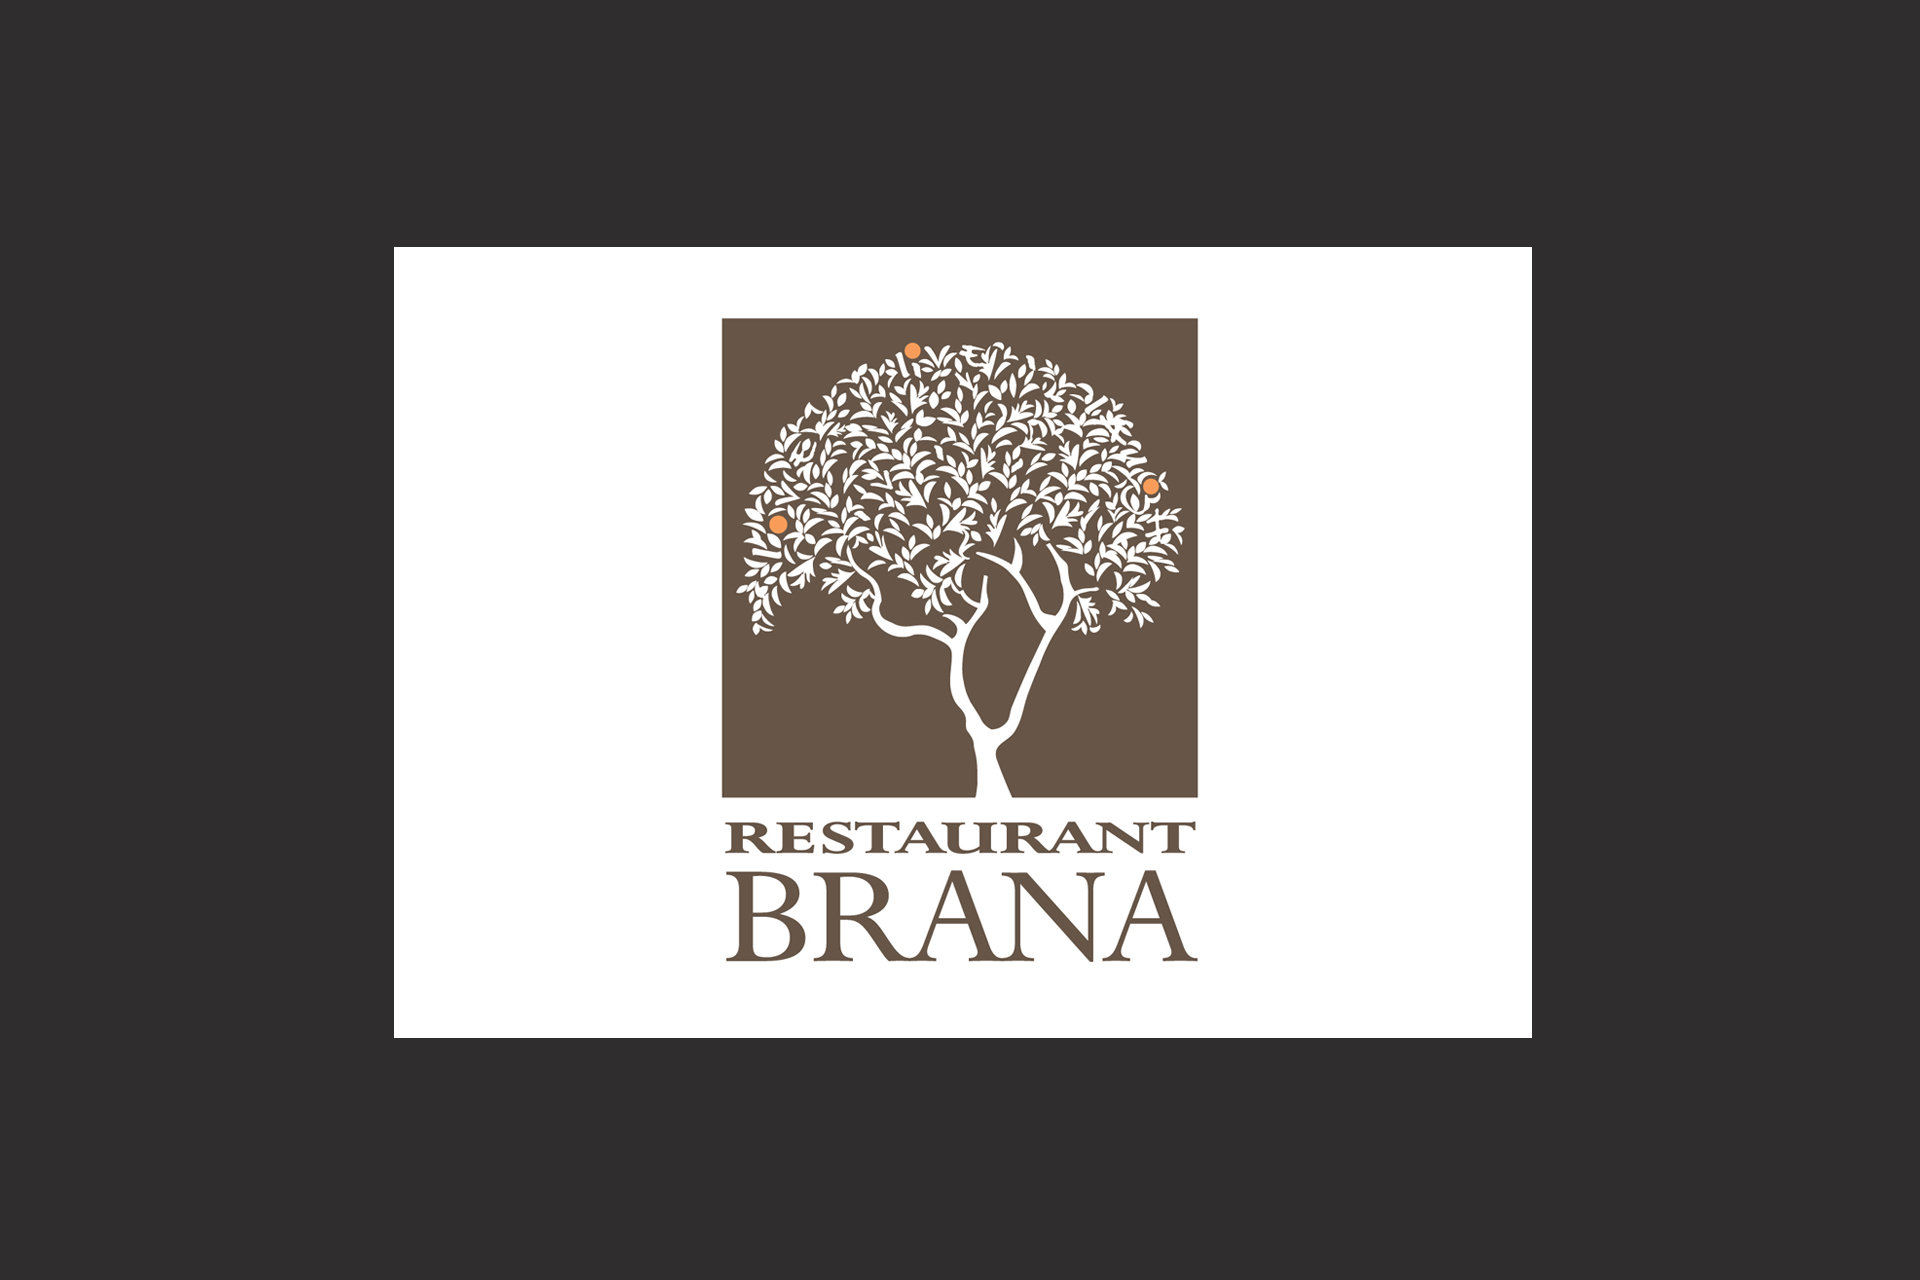 Restaurant Brana logo illustration